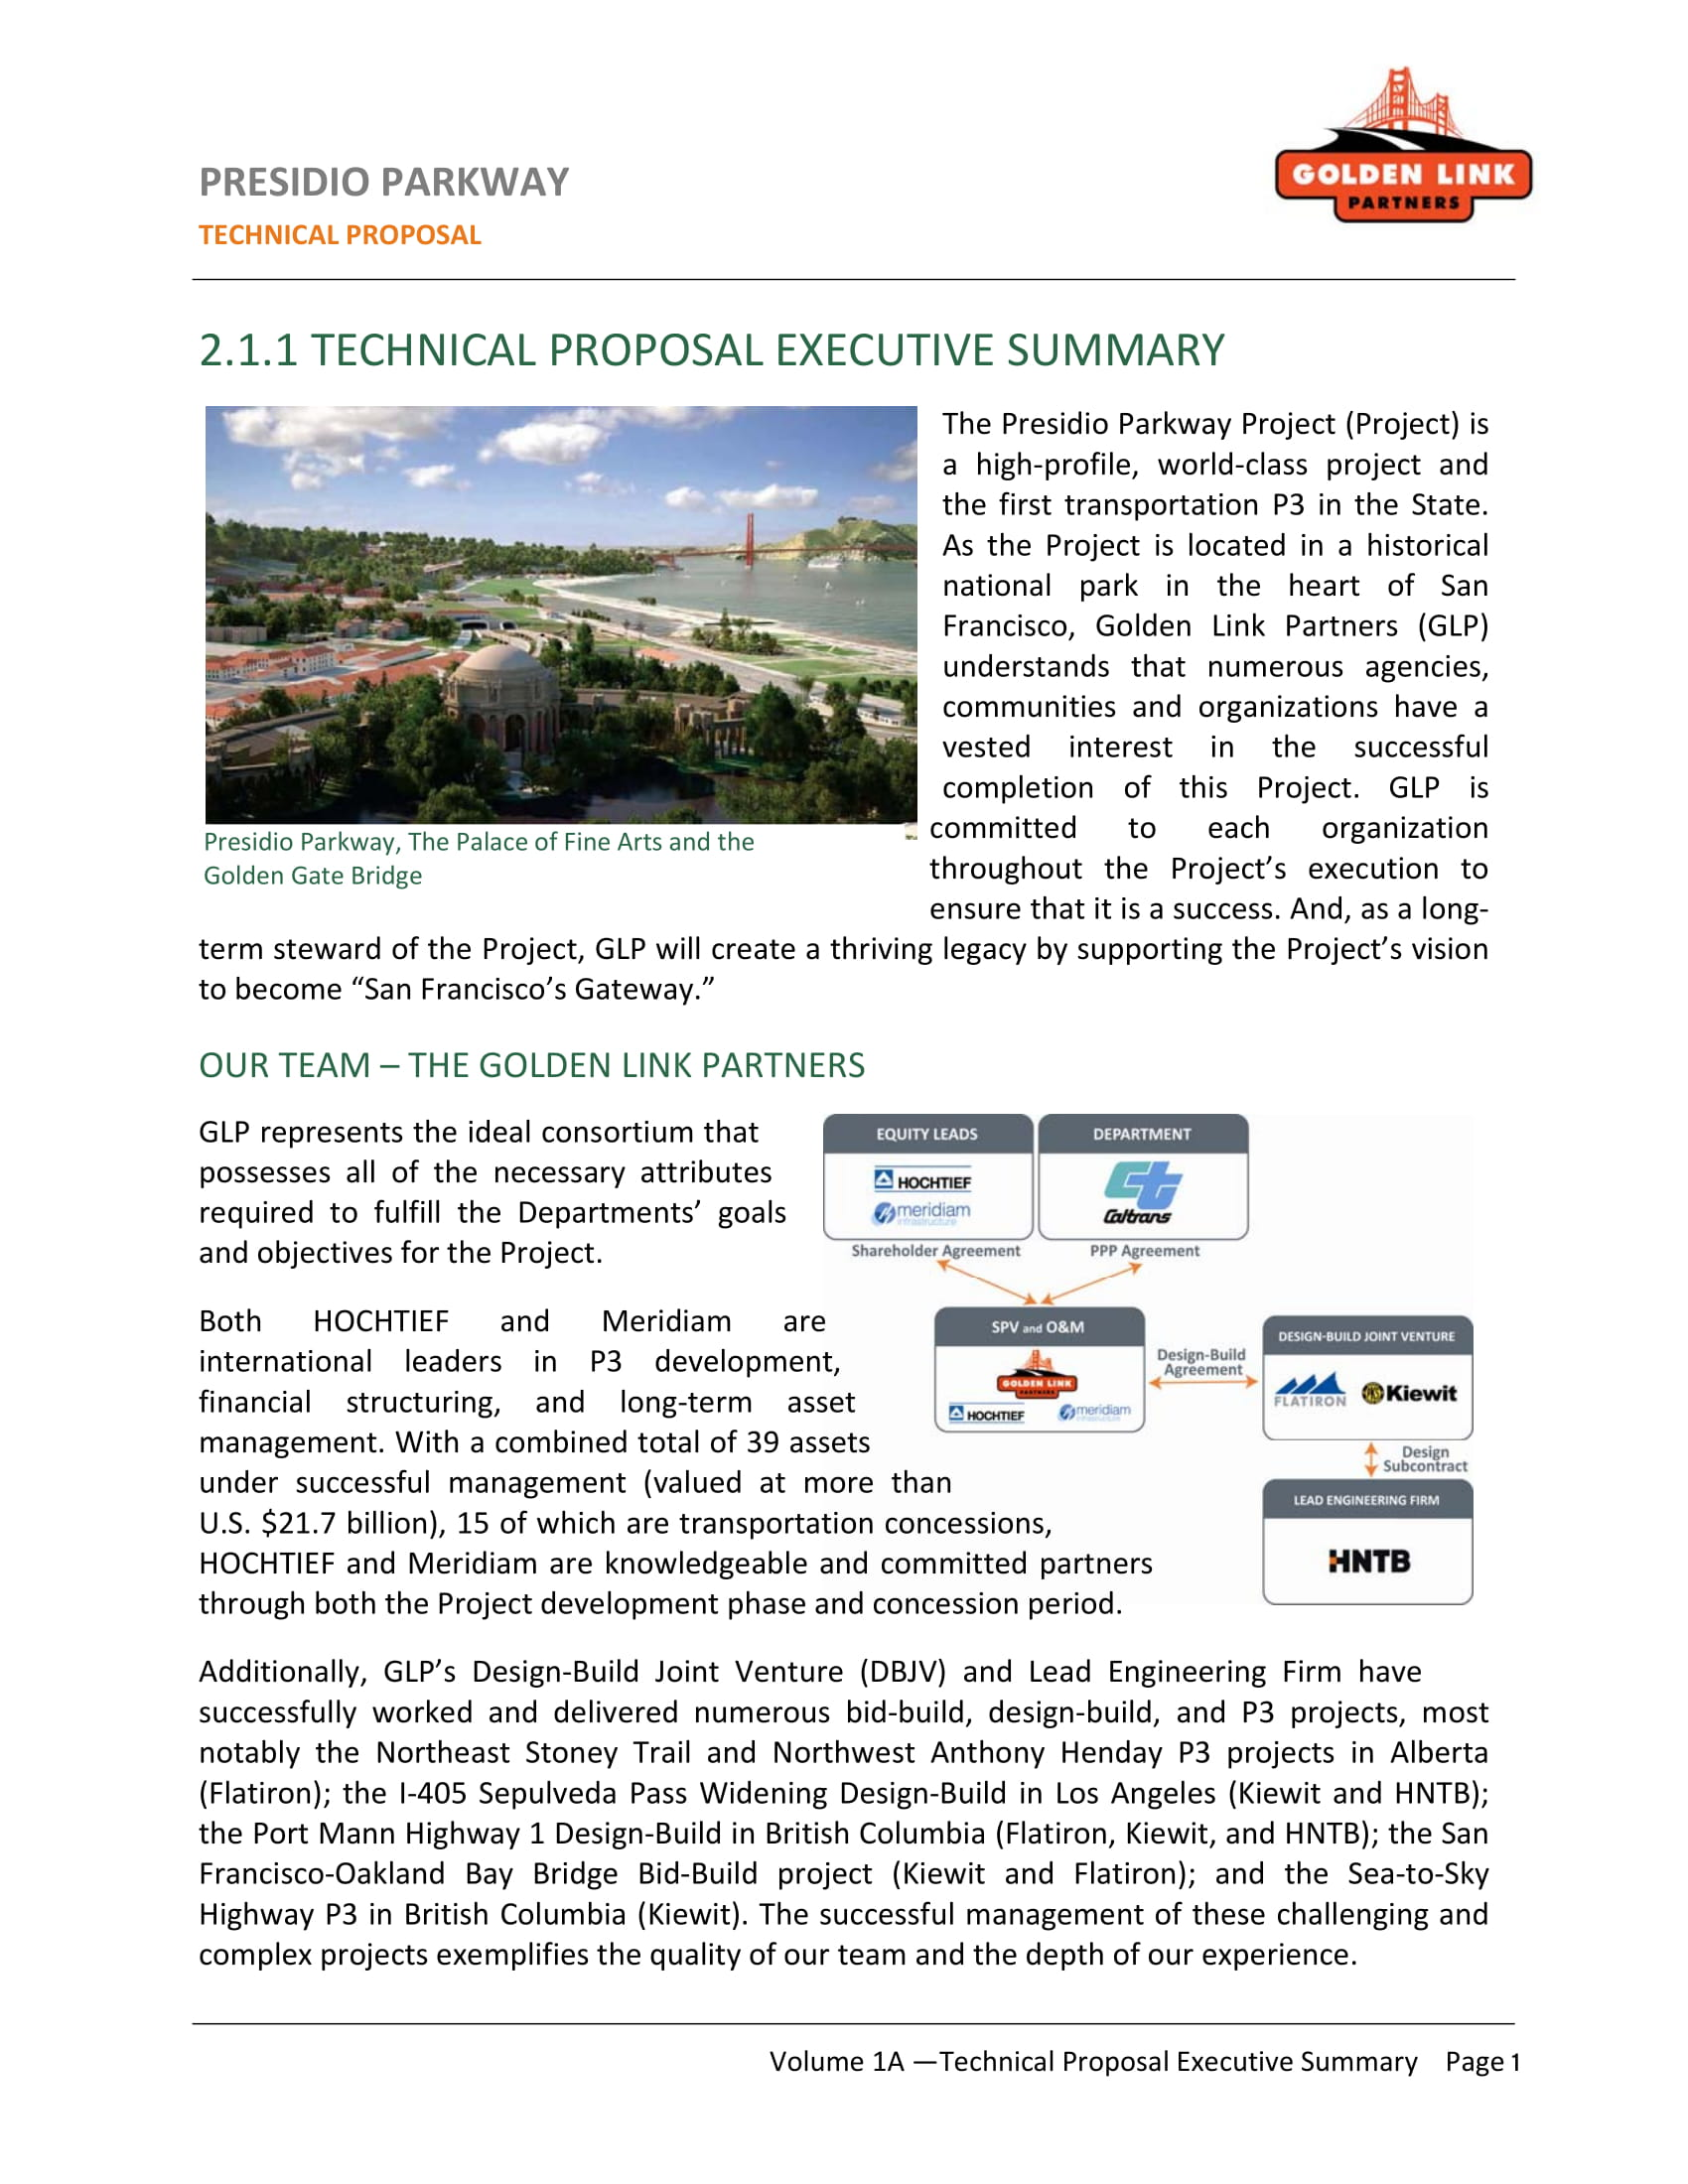 technical proposal executive summary example